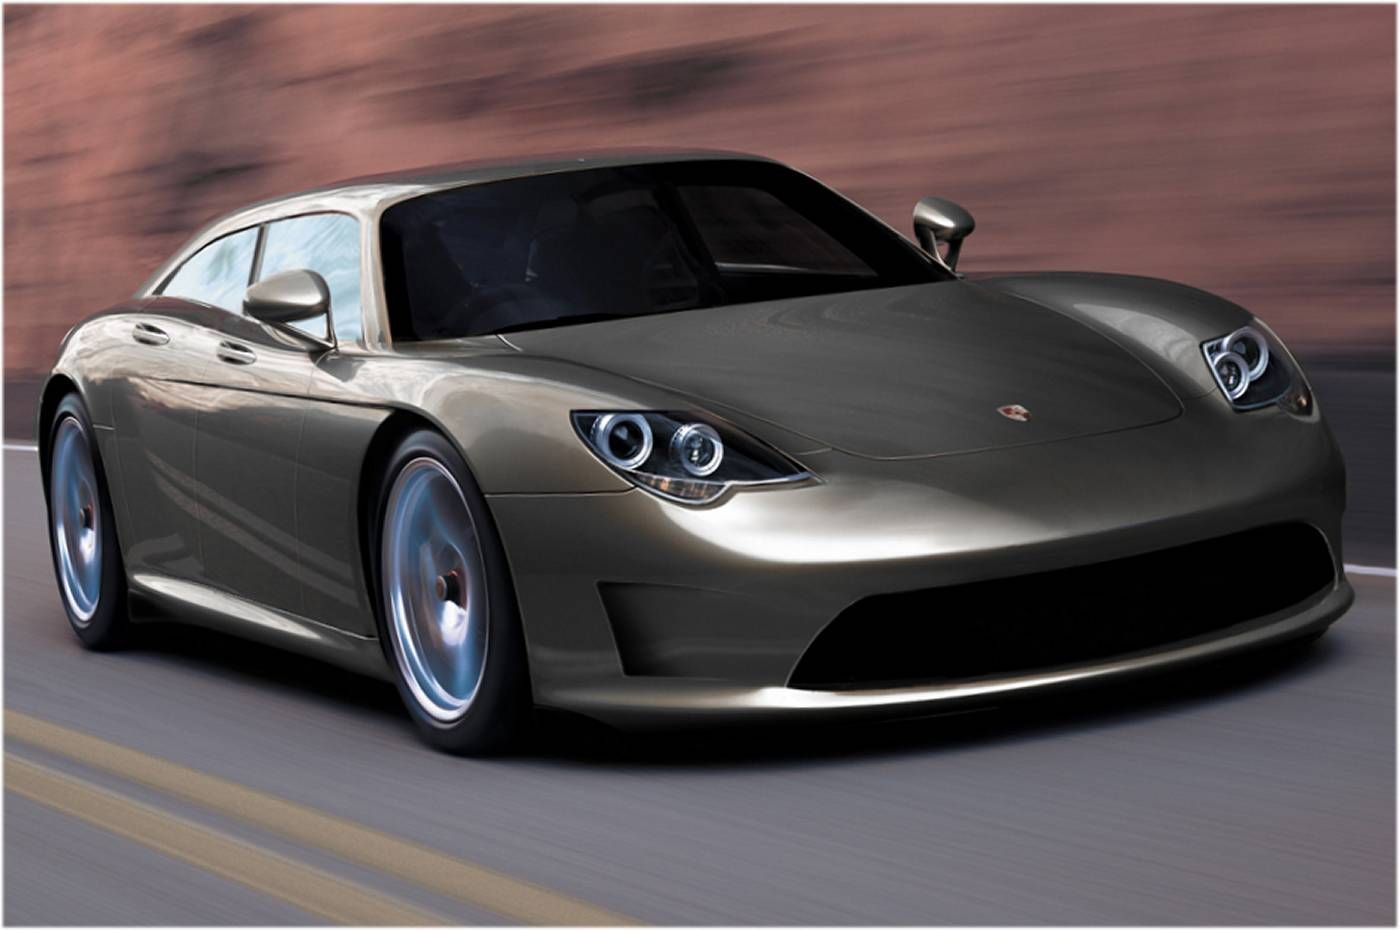 Porsche Panamera A Favorite At Carhoots Com Porsche Panamera Porsche Sports Car Dream Cars